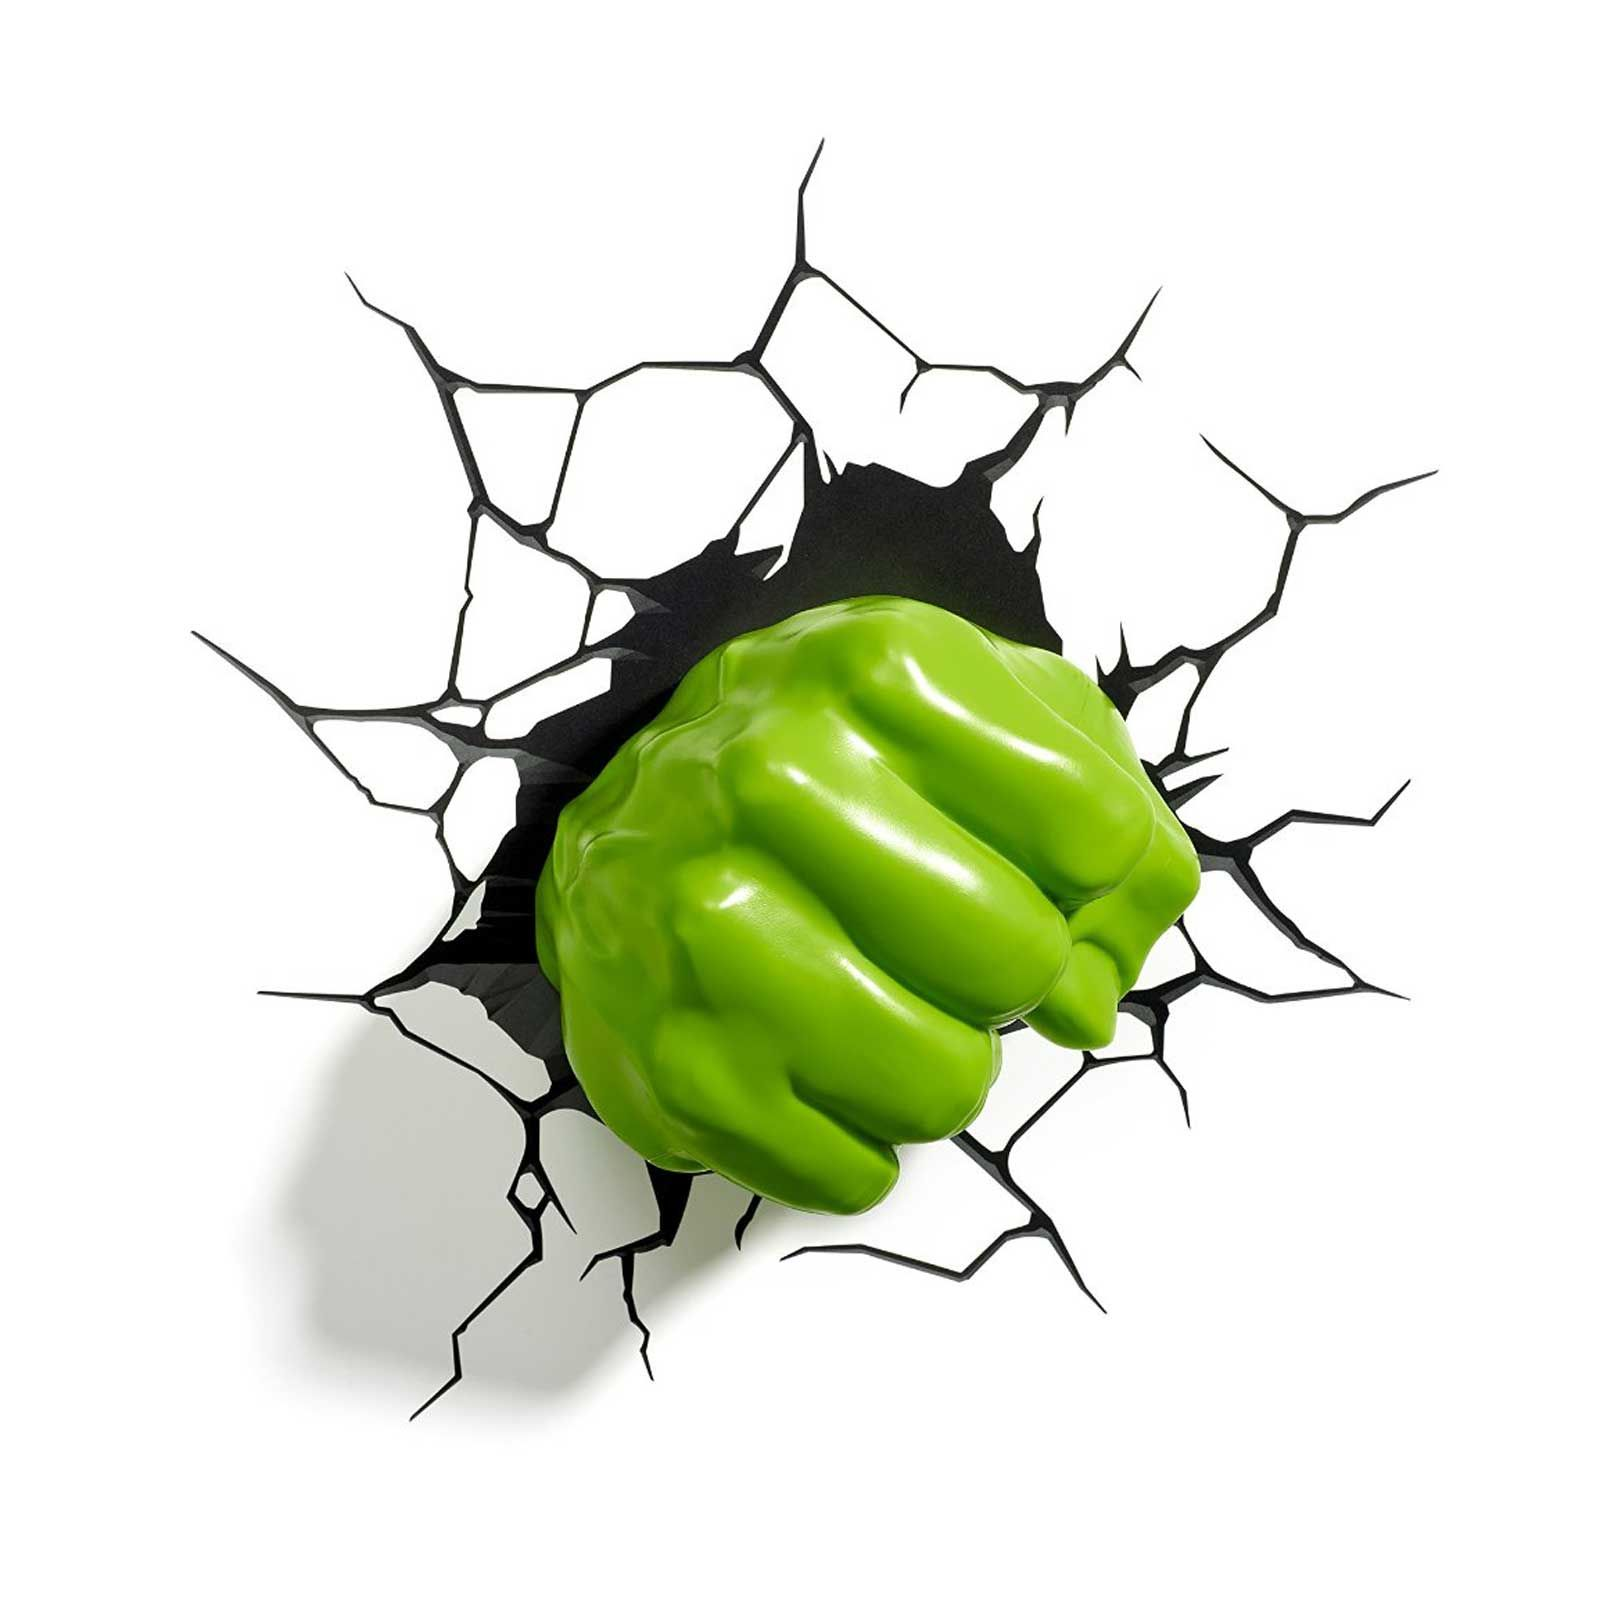 Marvel Wall Lights Hulk : MARVEL AVENGERS 3D WALL LIGHT - HULK, IRON MAN, CAPTAIN AMERICA, THOR, SPIDERMAN eBay